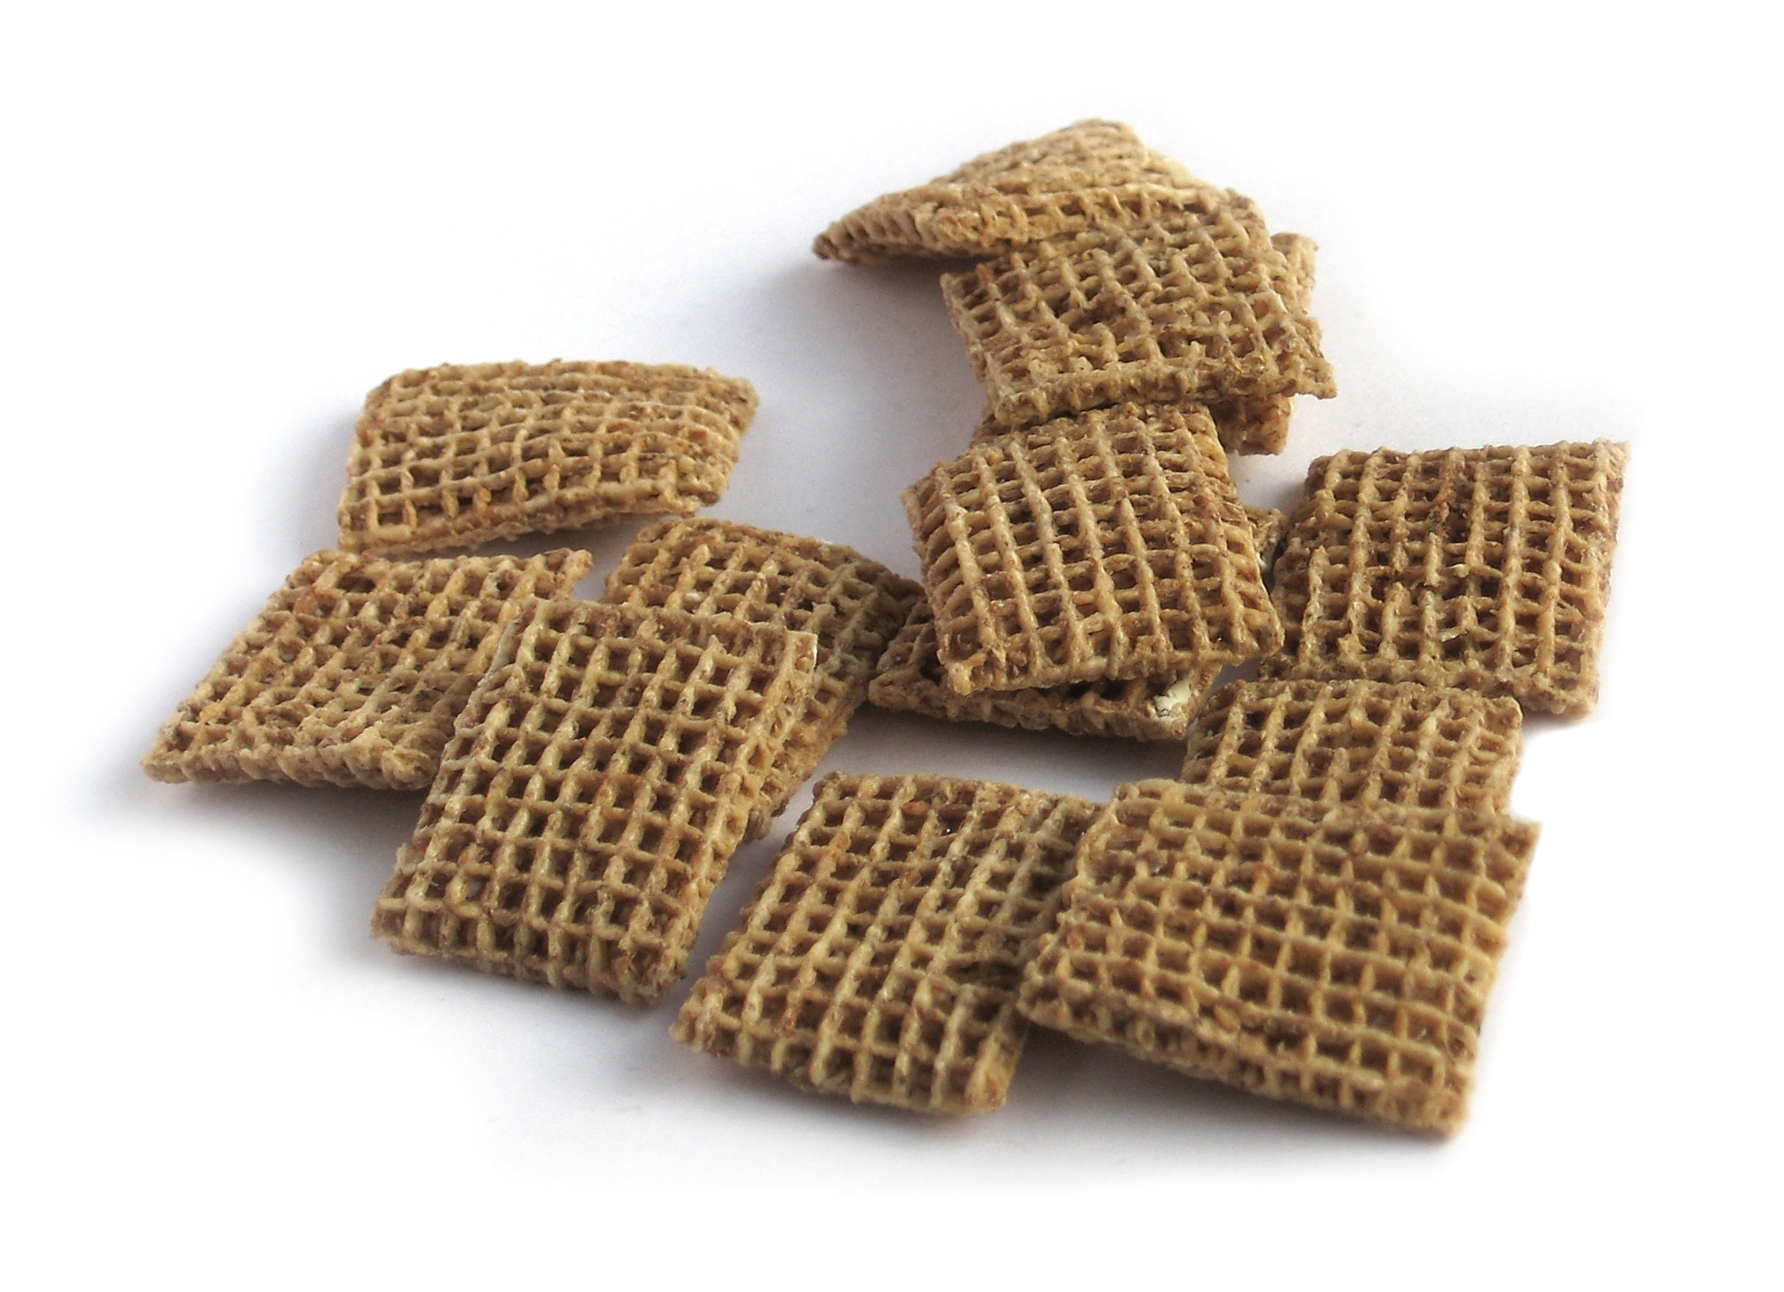 file shreddies jpg wikipedia knitting clip art free line knitting clip art borders